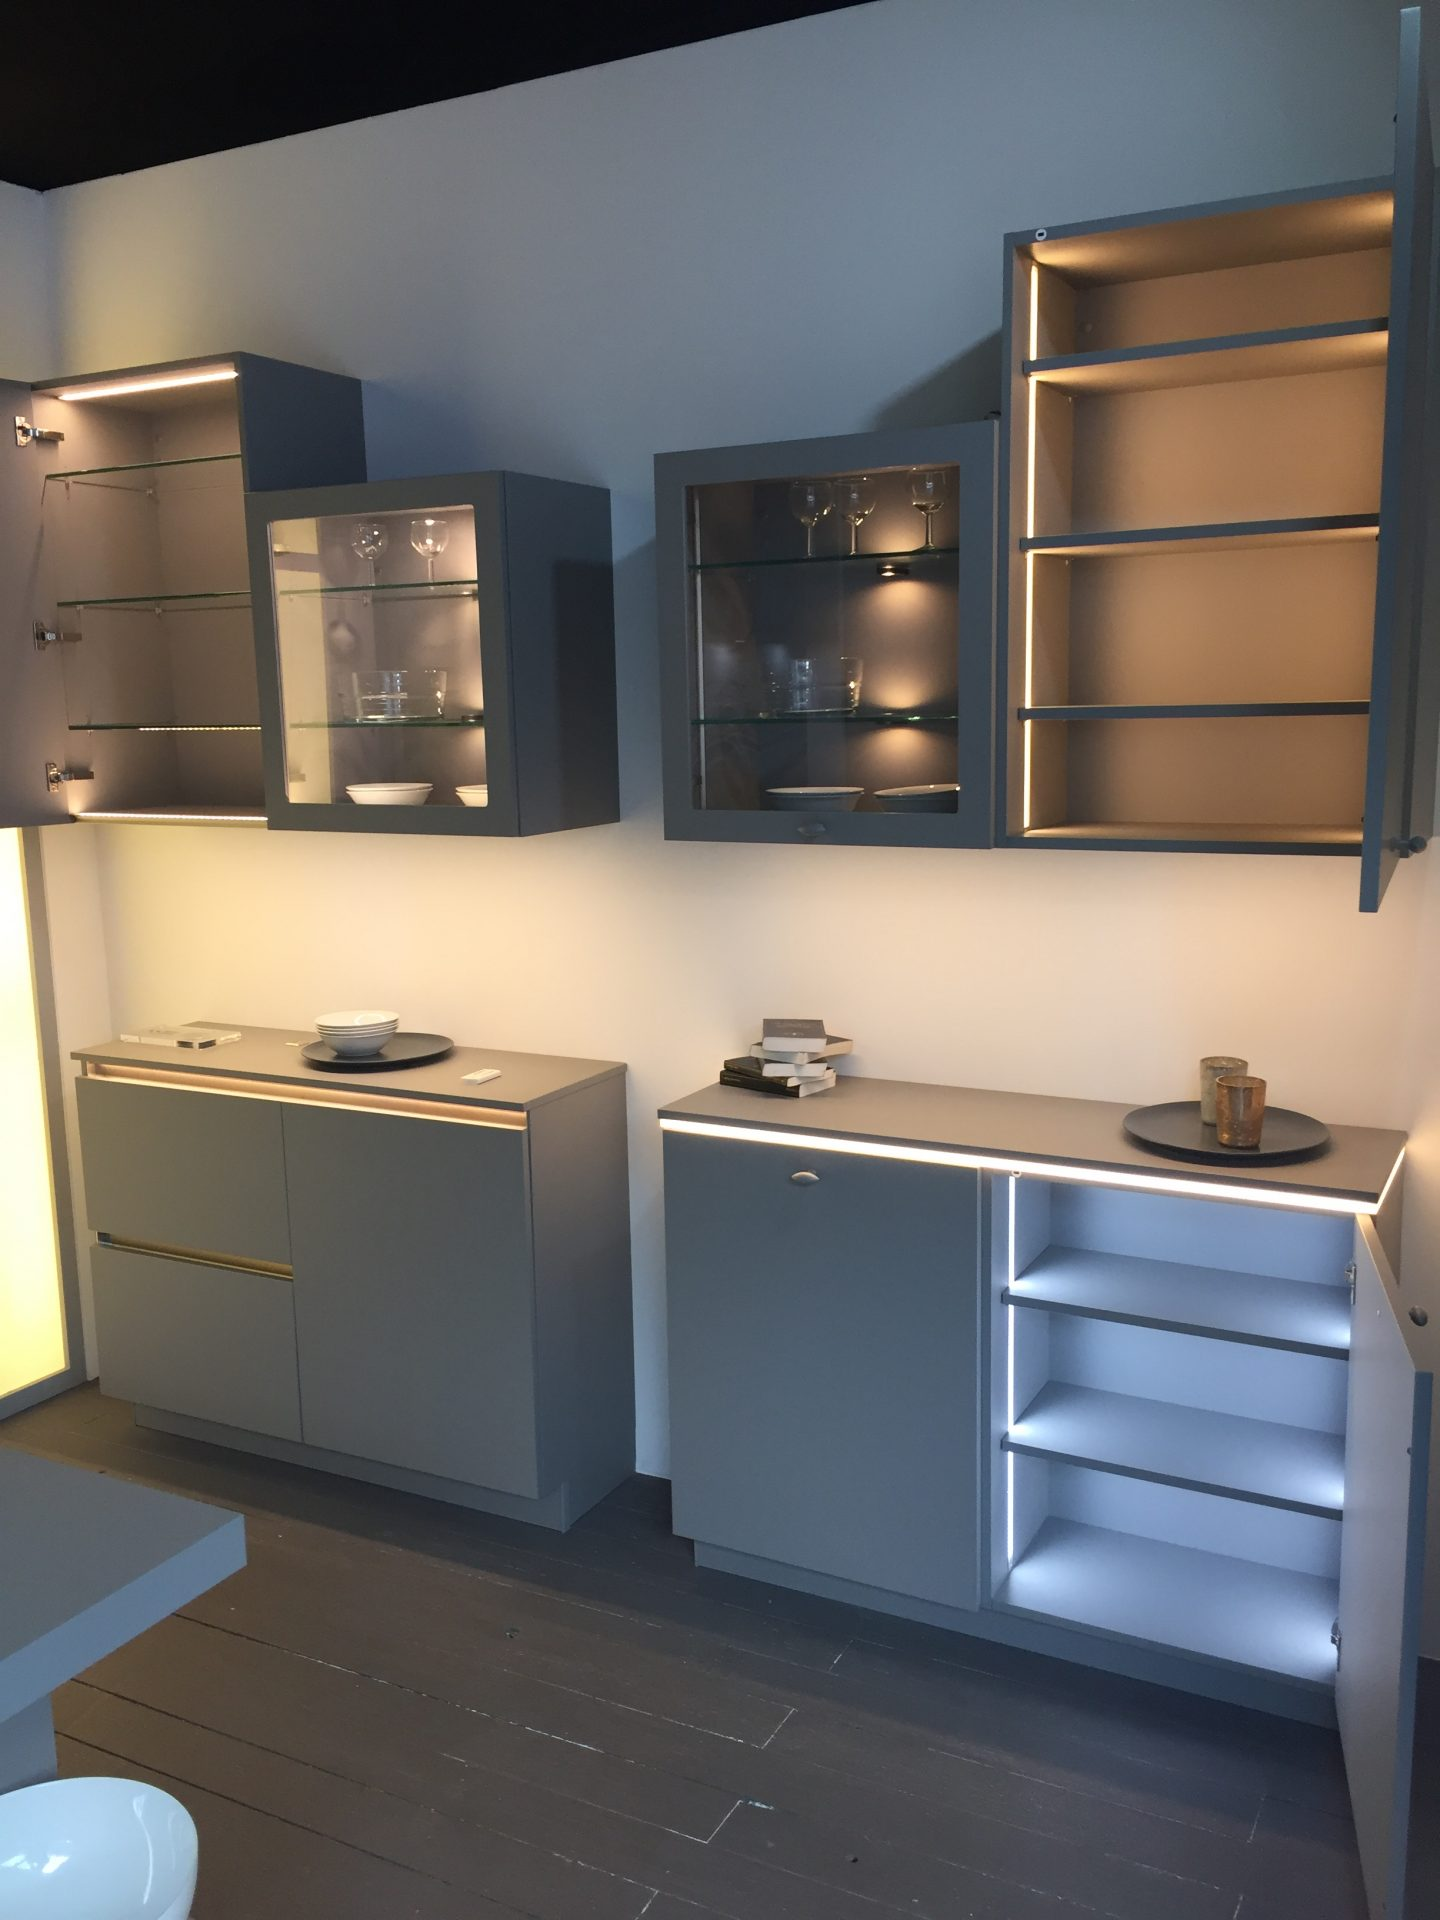 Kitchen Glass Display Wall Cabinets With Lights